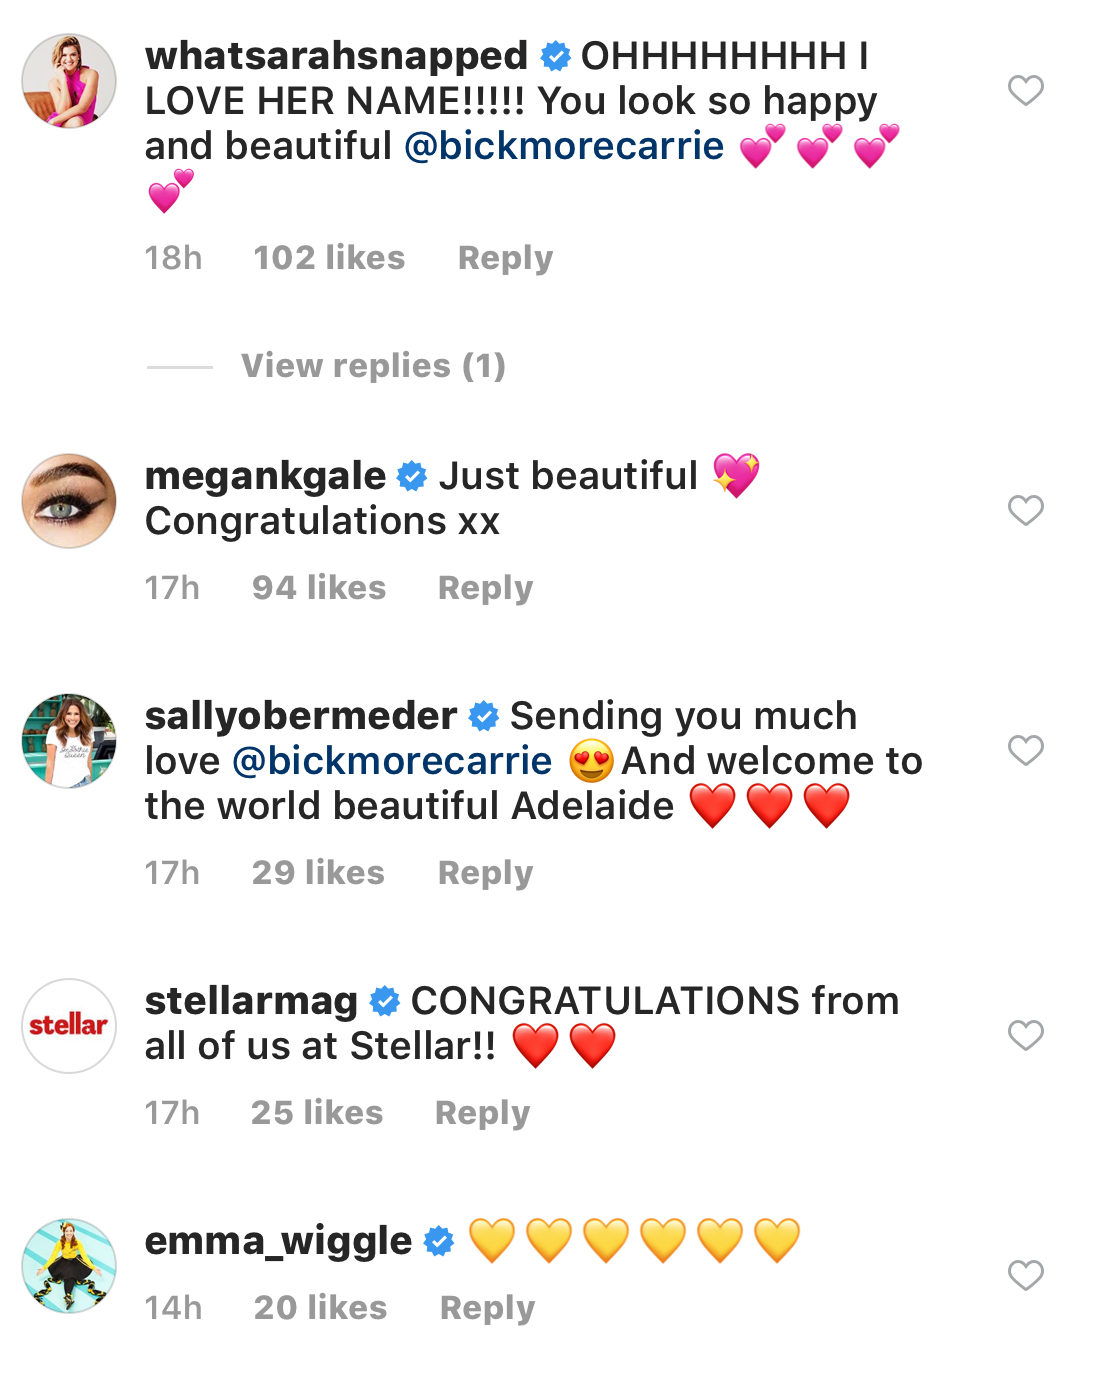 Carrie instagram comments